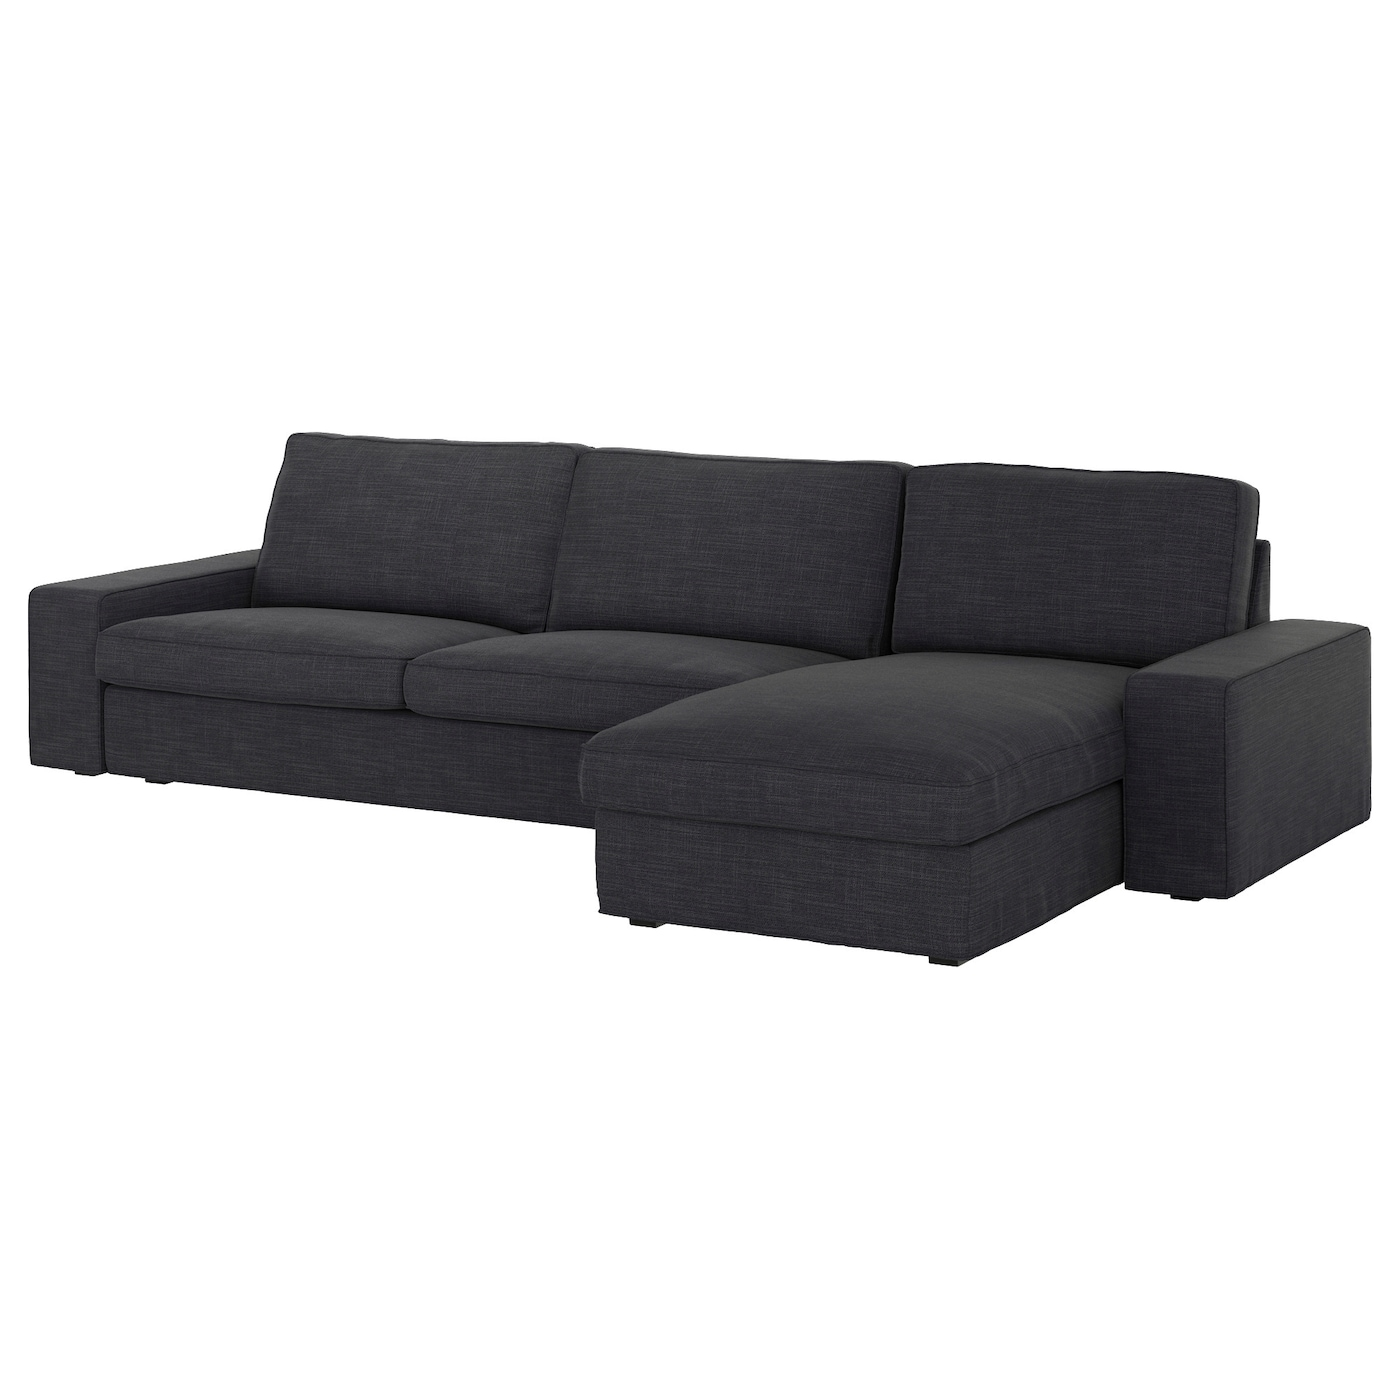 Kivik three seat sofa and chaise longue hillared for Chaise and sofa